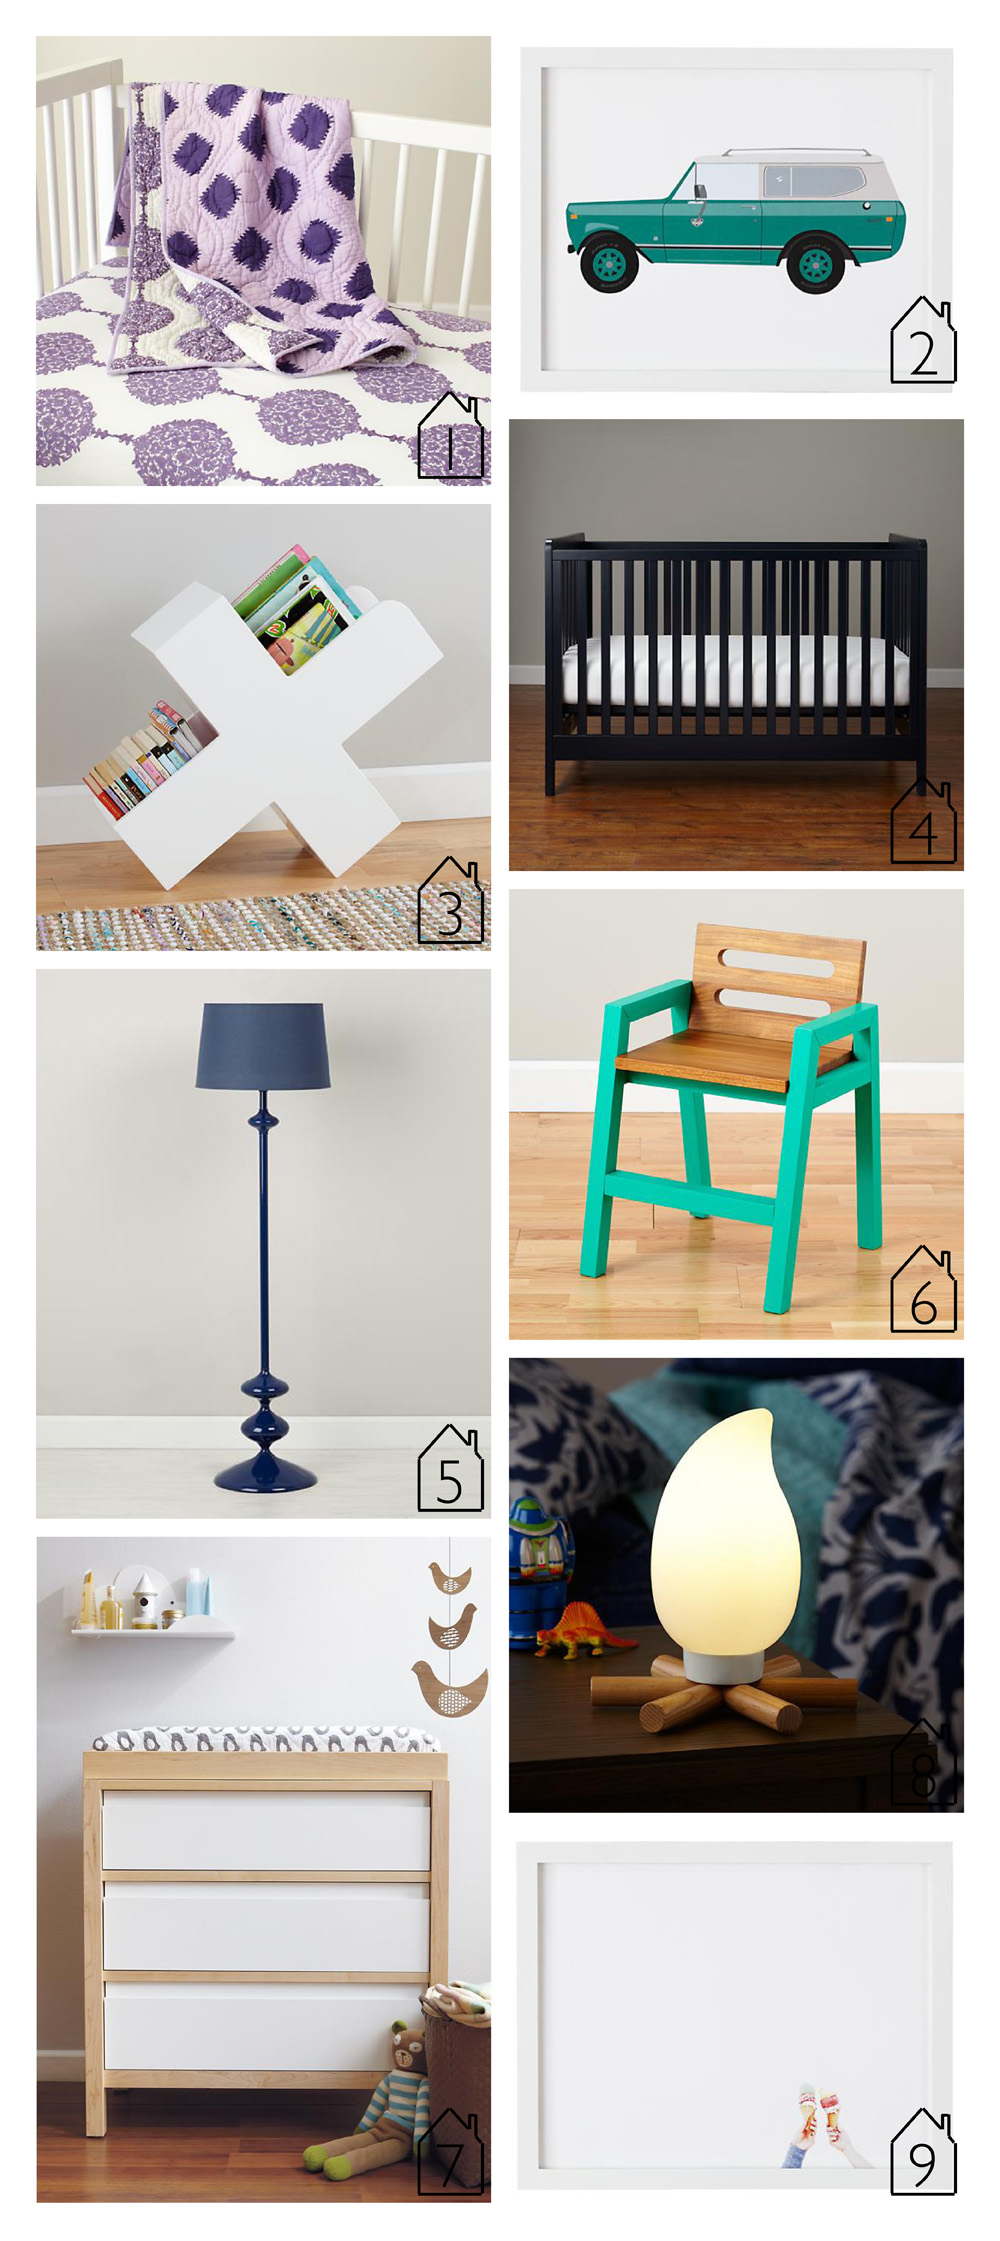 1.  Bazaar Crib Bedding   2.  Car Love   3.  X Marks the Book Caddy   4.  Carousel Crib Midnight Blue   5.  Checkmate Floor Lamp Dark Blue   6.  Two Tone Teak Play Chair (Green)   7.  Andersen 3 Drawer Maple   8.  Campsite Nightlight   9.  Ice Cream